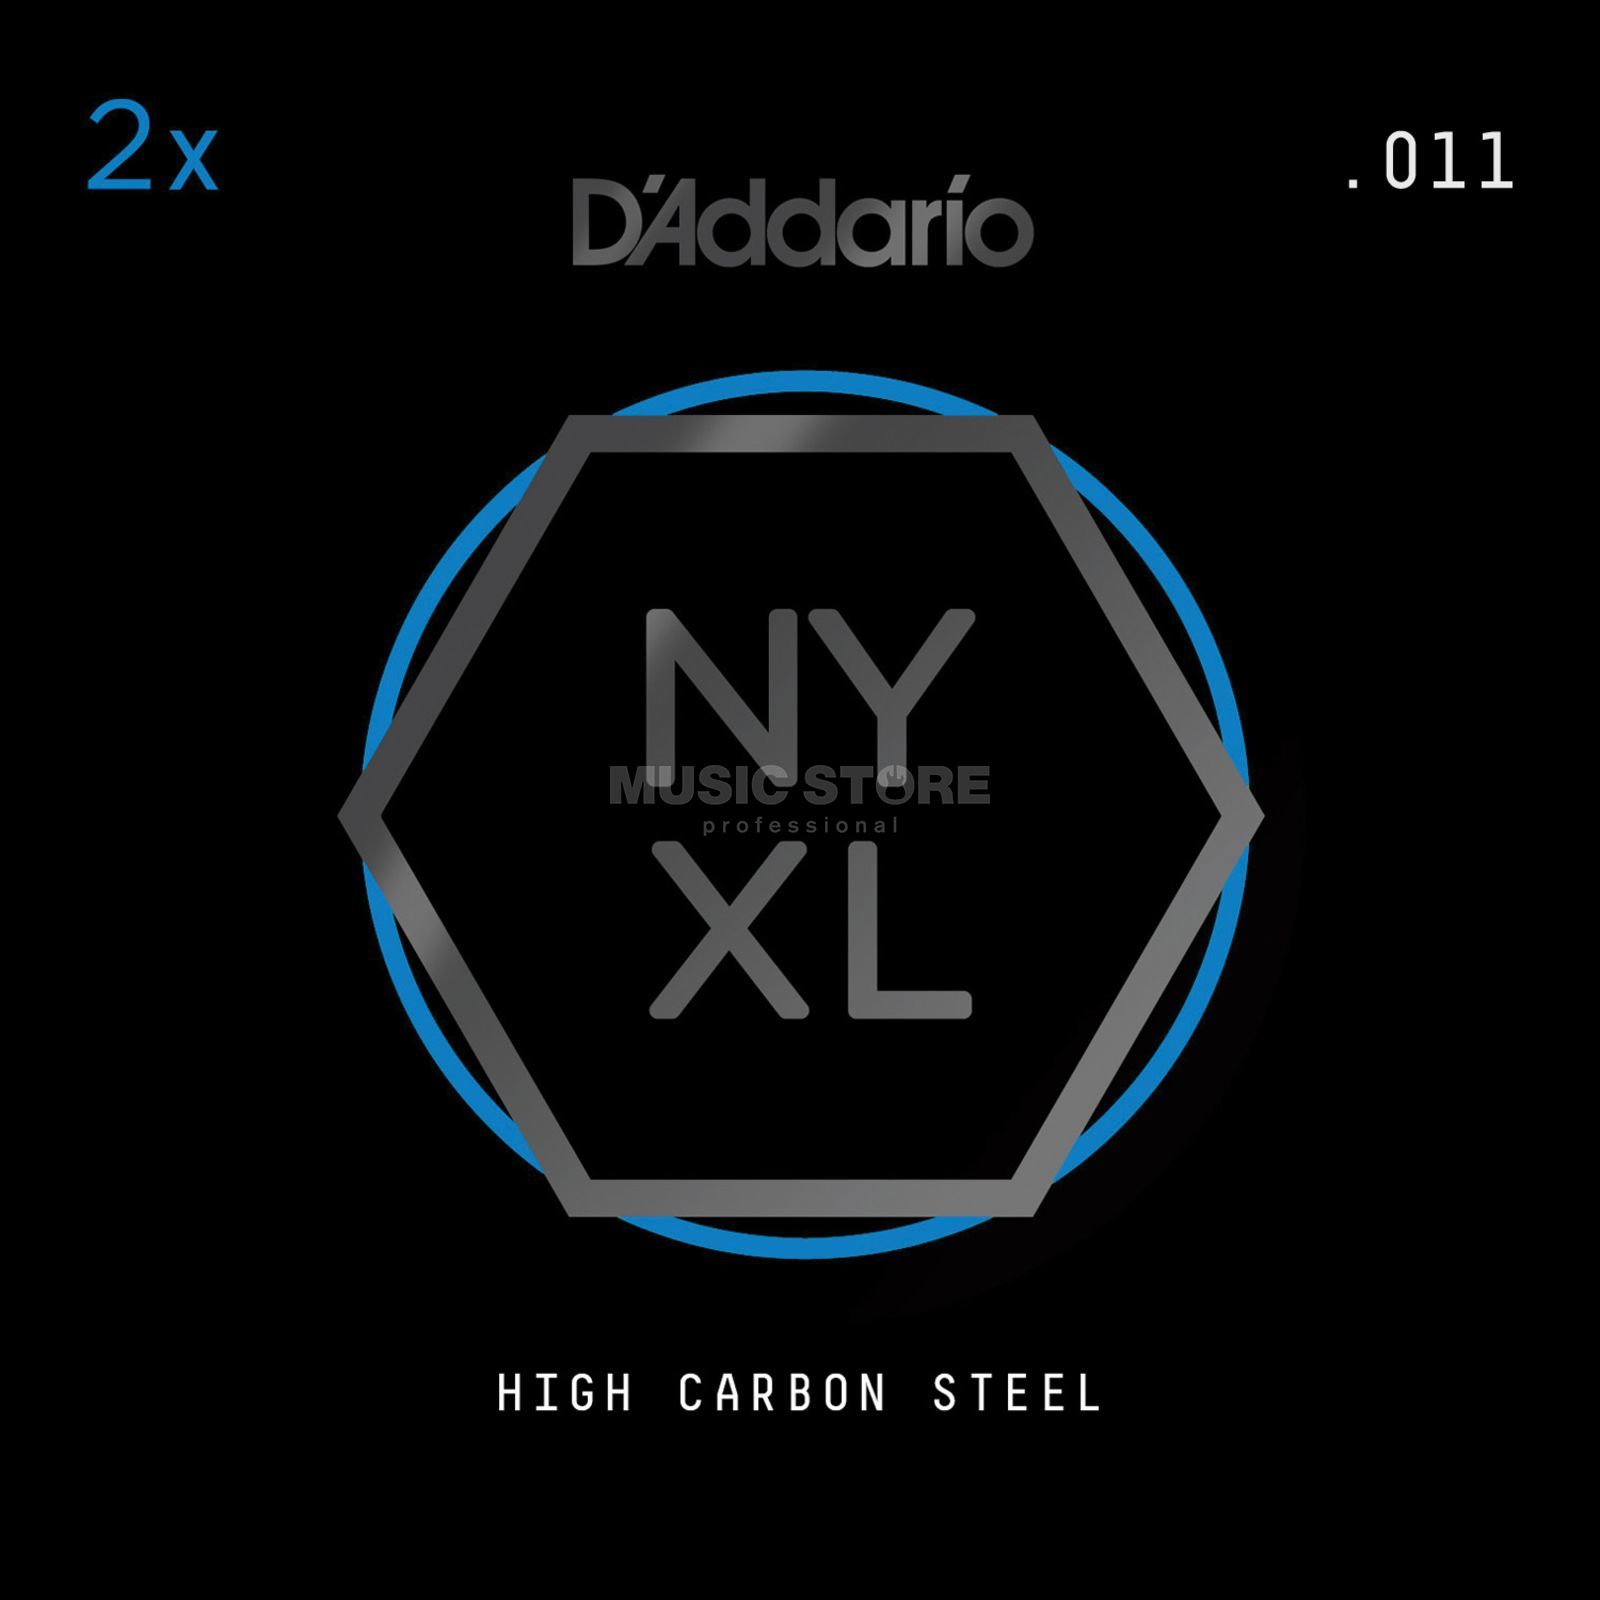 D'Addario NYPL011 Plain Single String 2-Pack - High Carbon Steel Product Image